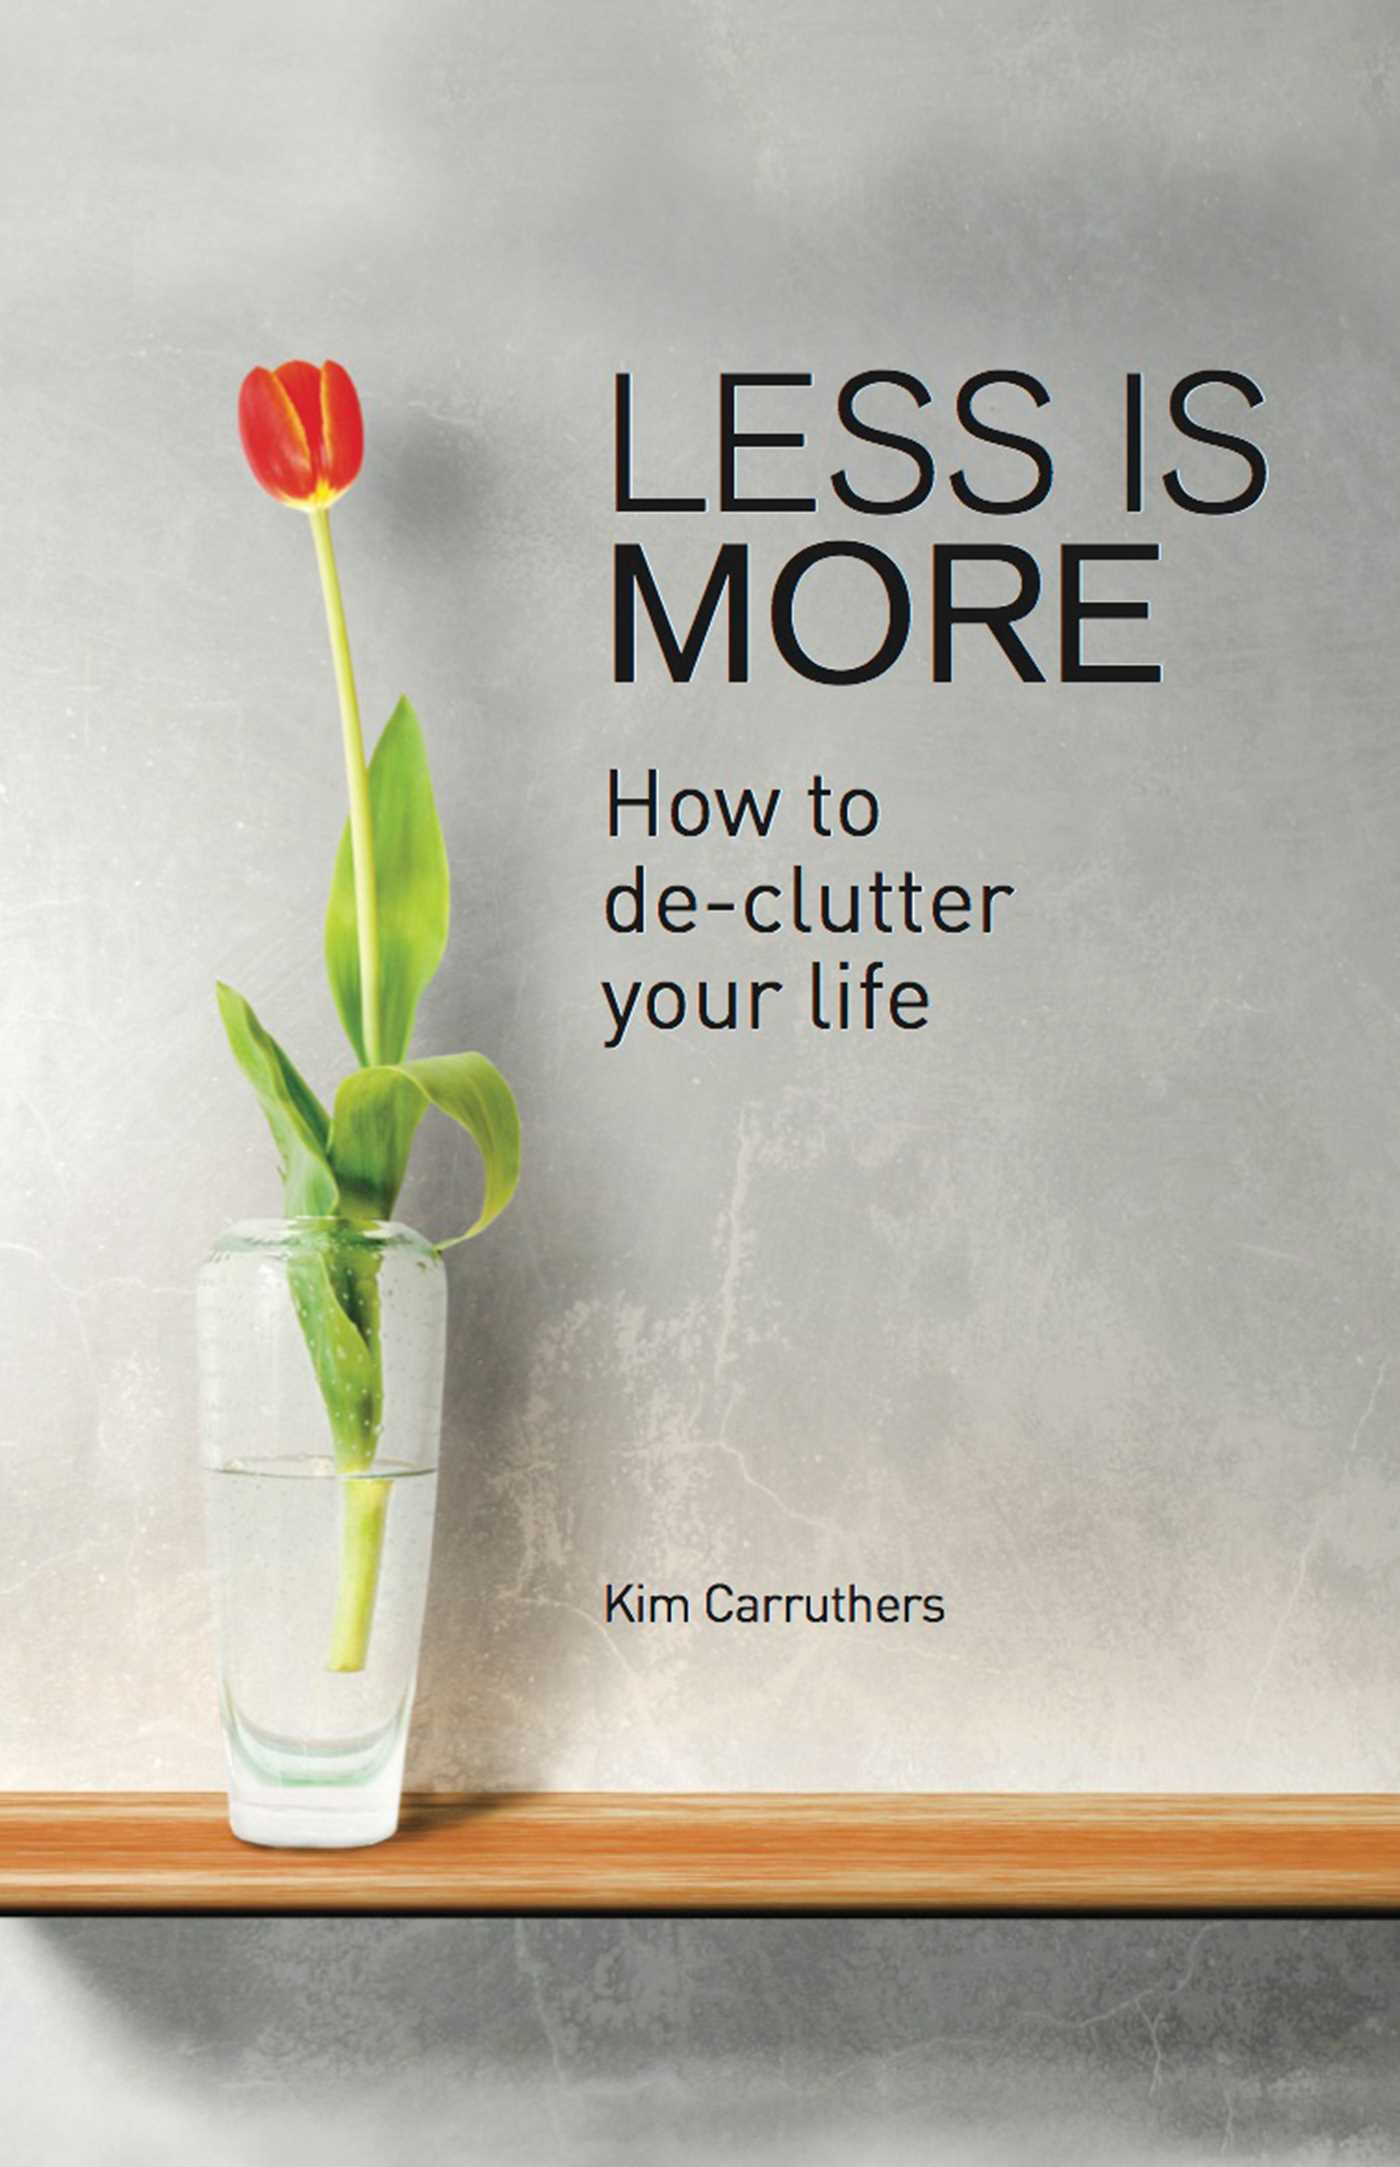 Less is more citystille mindfulness center vienna for Less is more boek